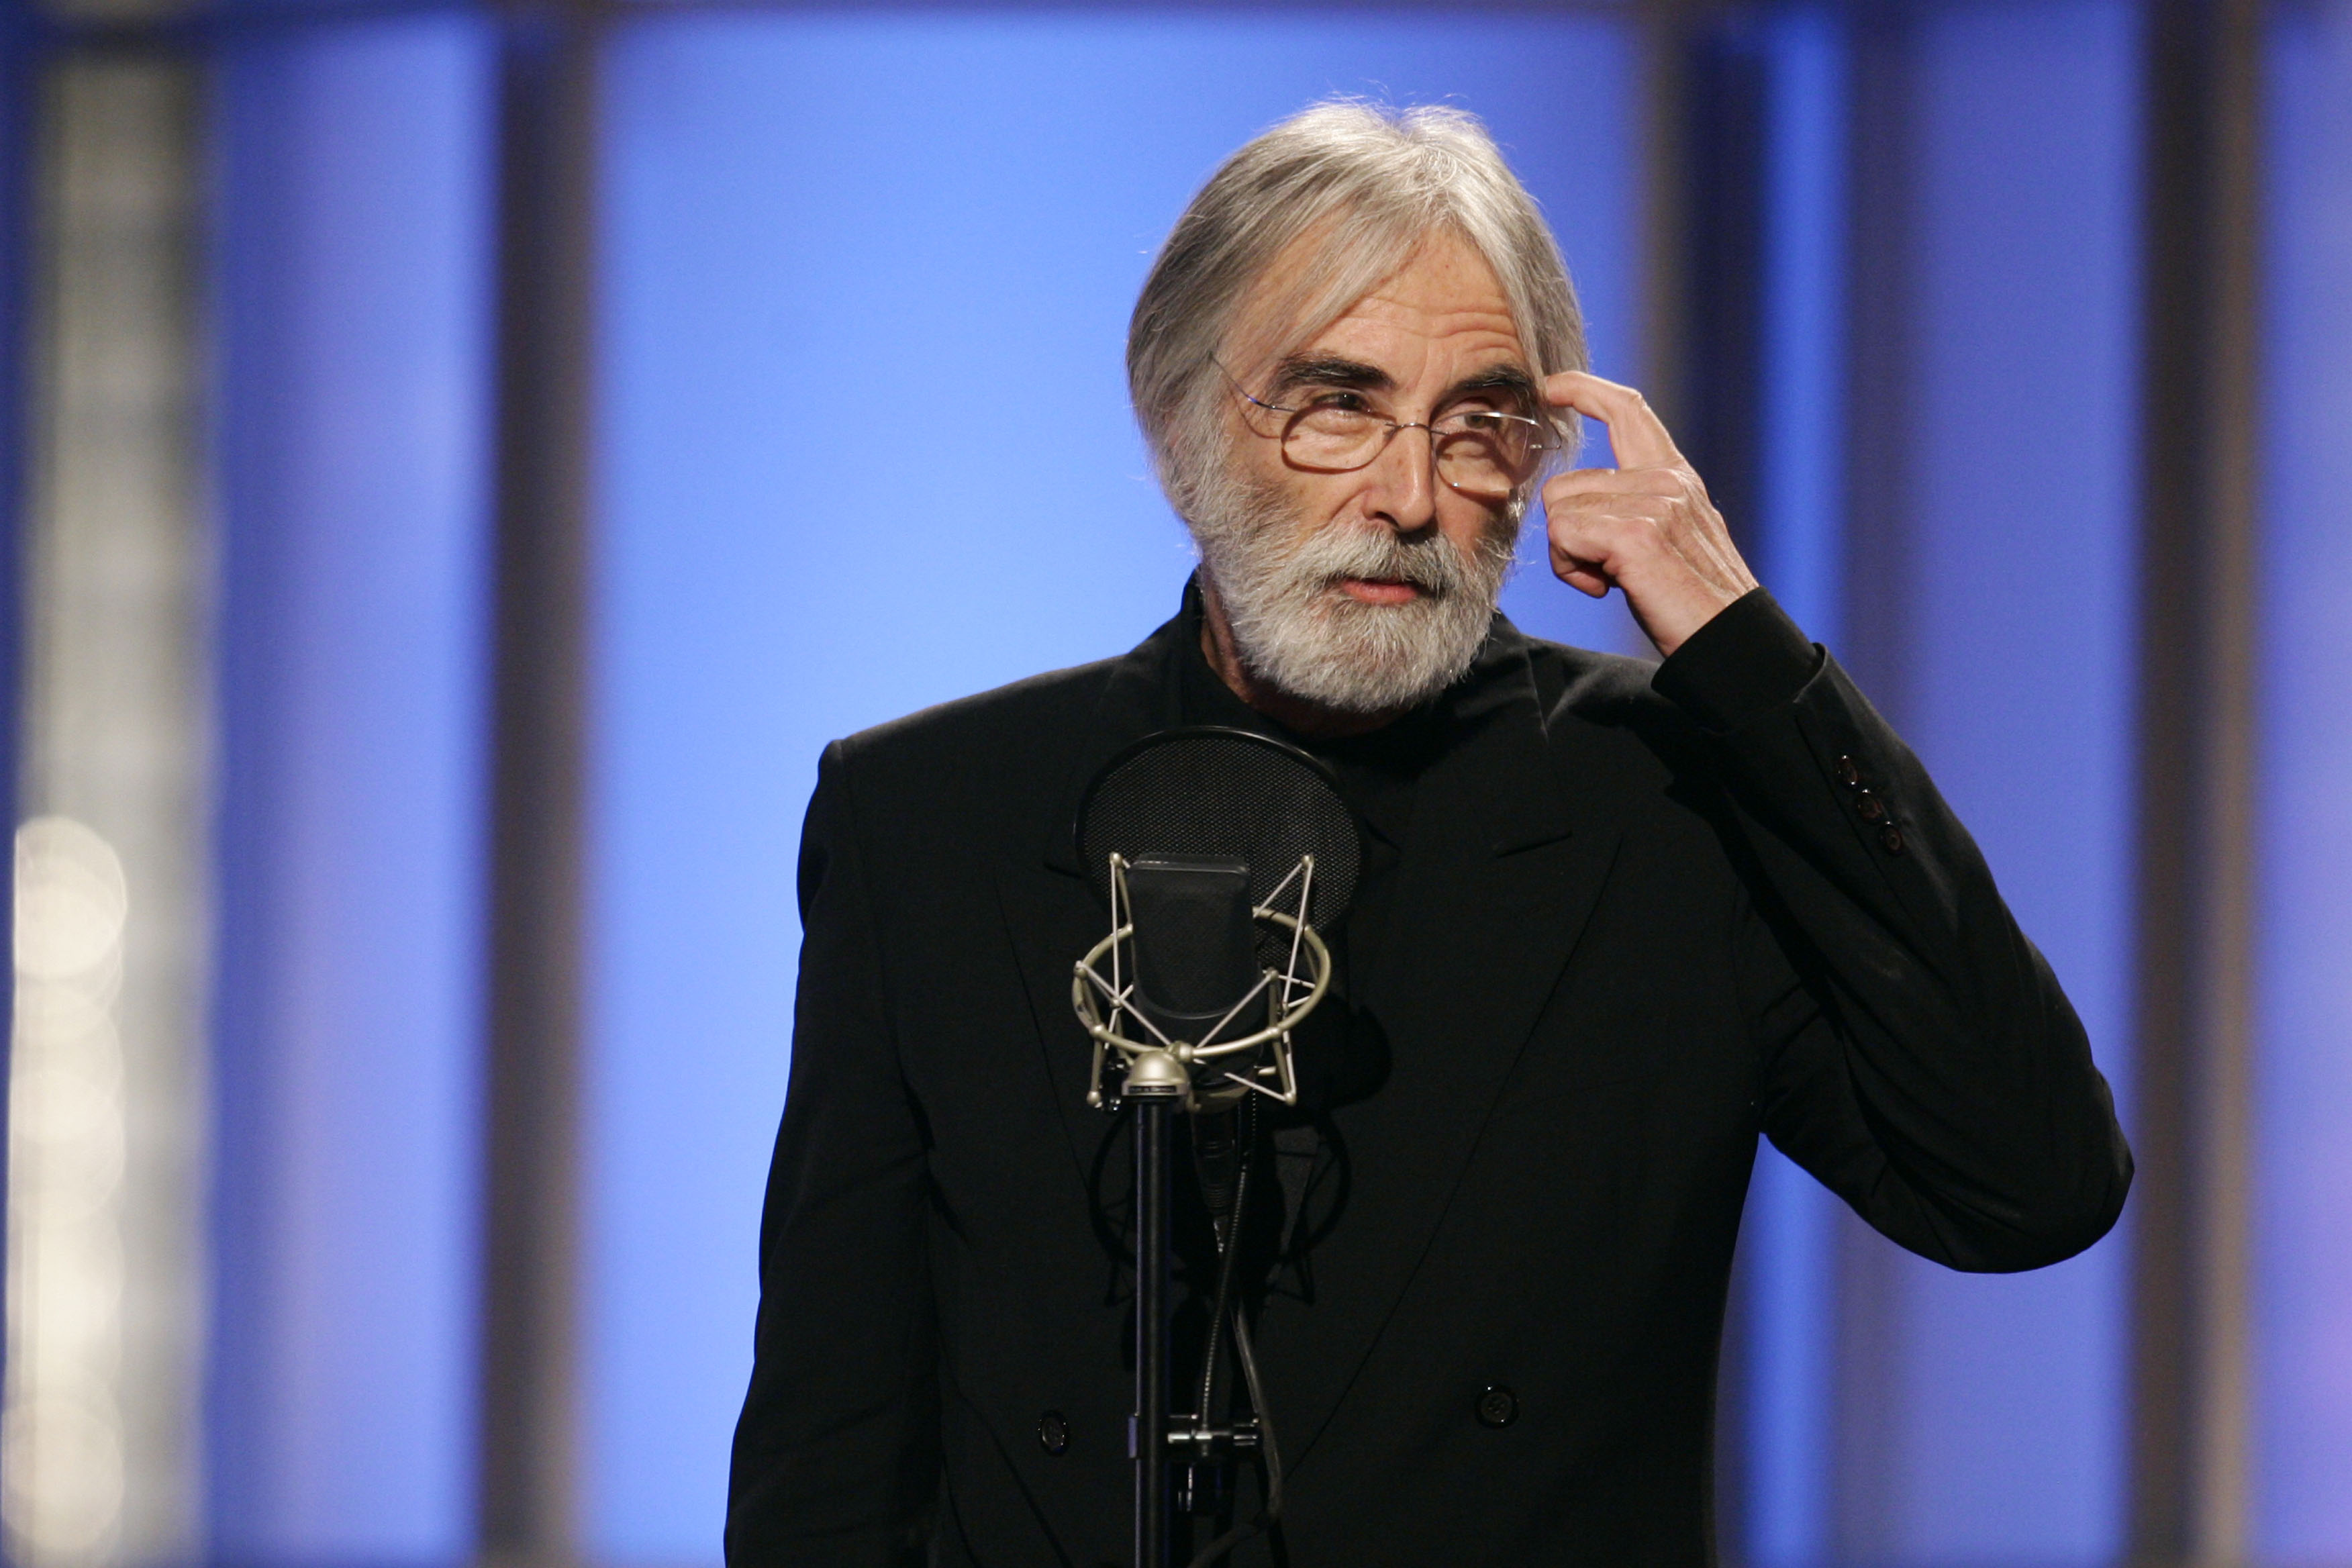 violence and media haneke essay Michael haneke violence and media essay 30 violence and the media: a companion to michael haneke extract.